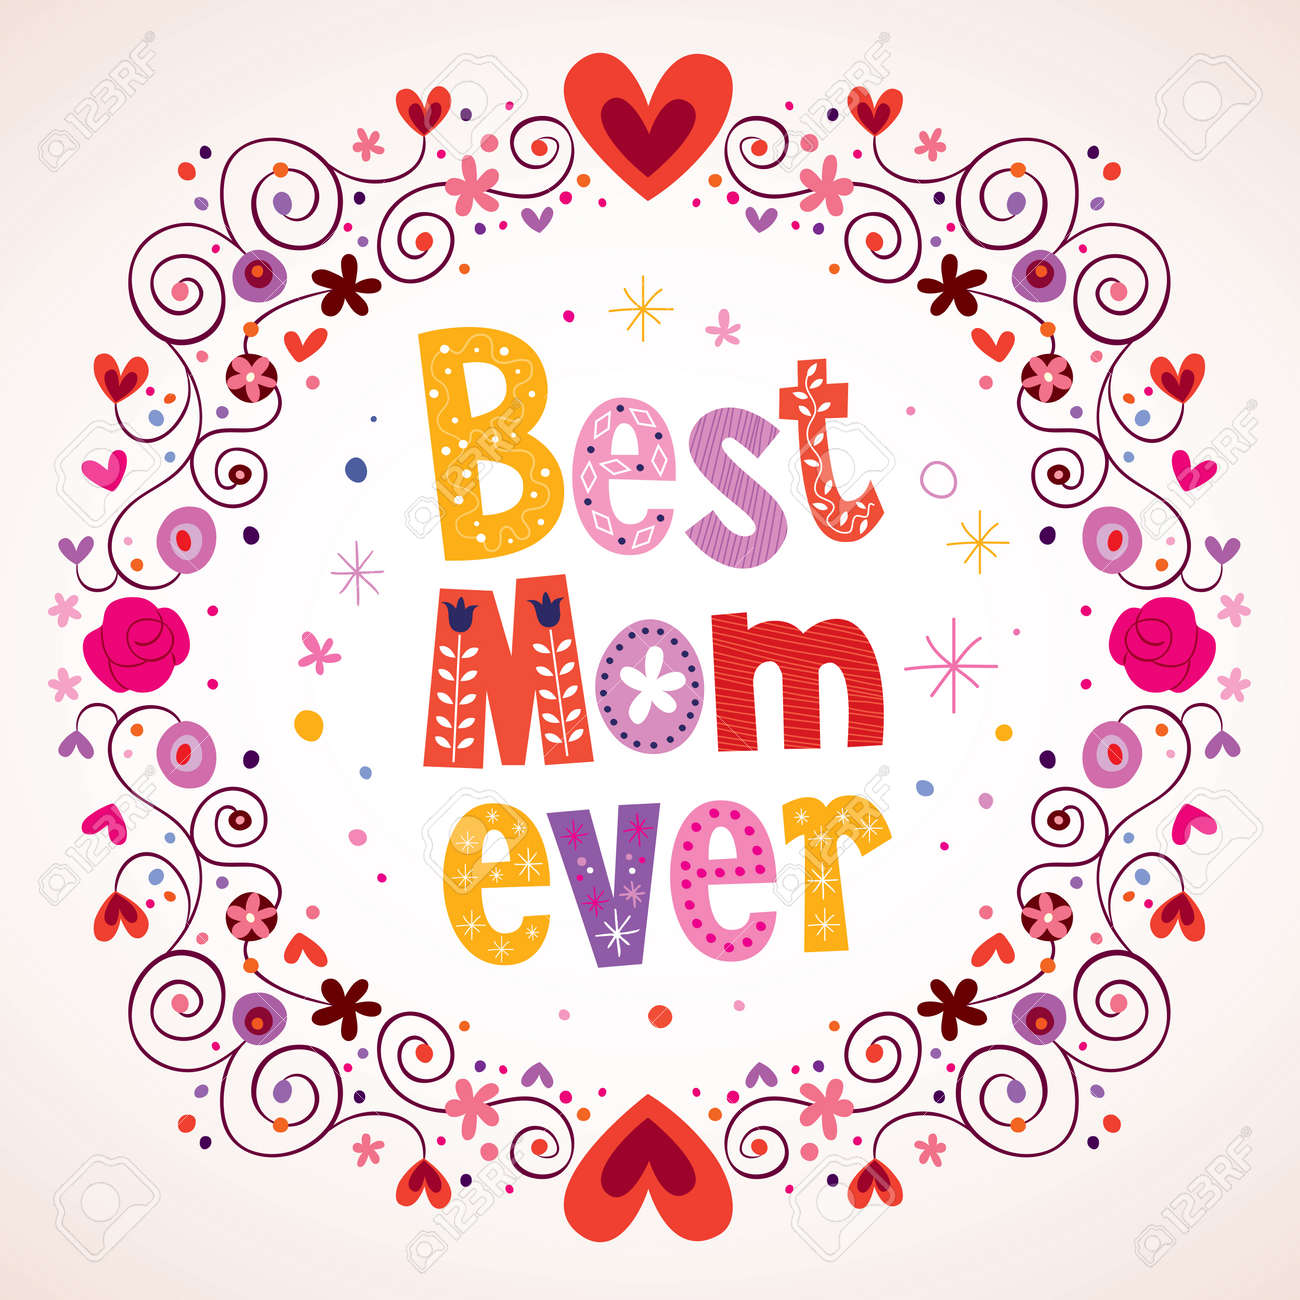 79f8d699d2 Best Mom Ever Hearts And Flowers Card Royalty Free Cliparts, Vectors ...